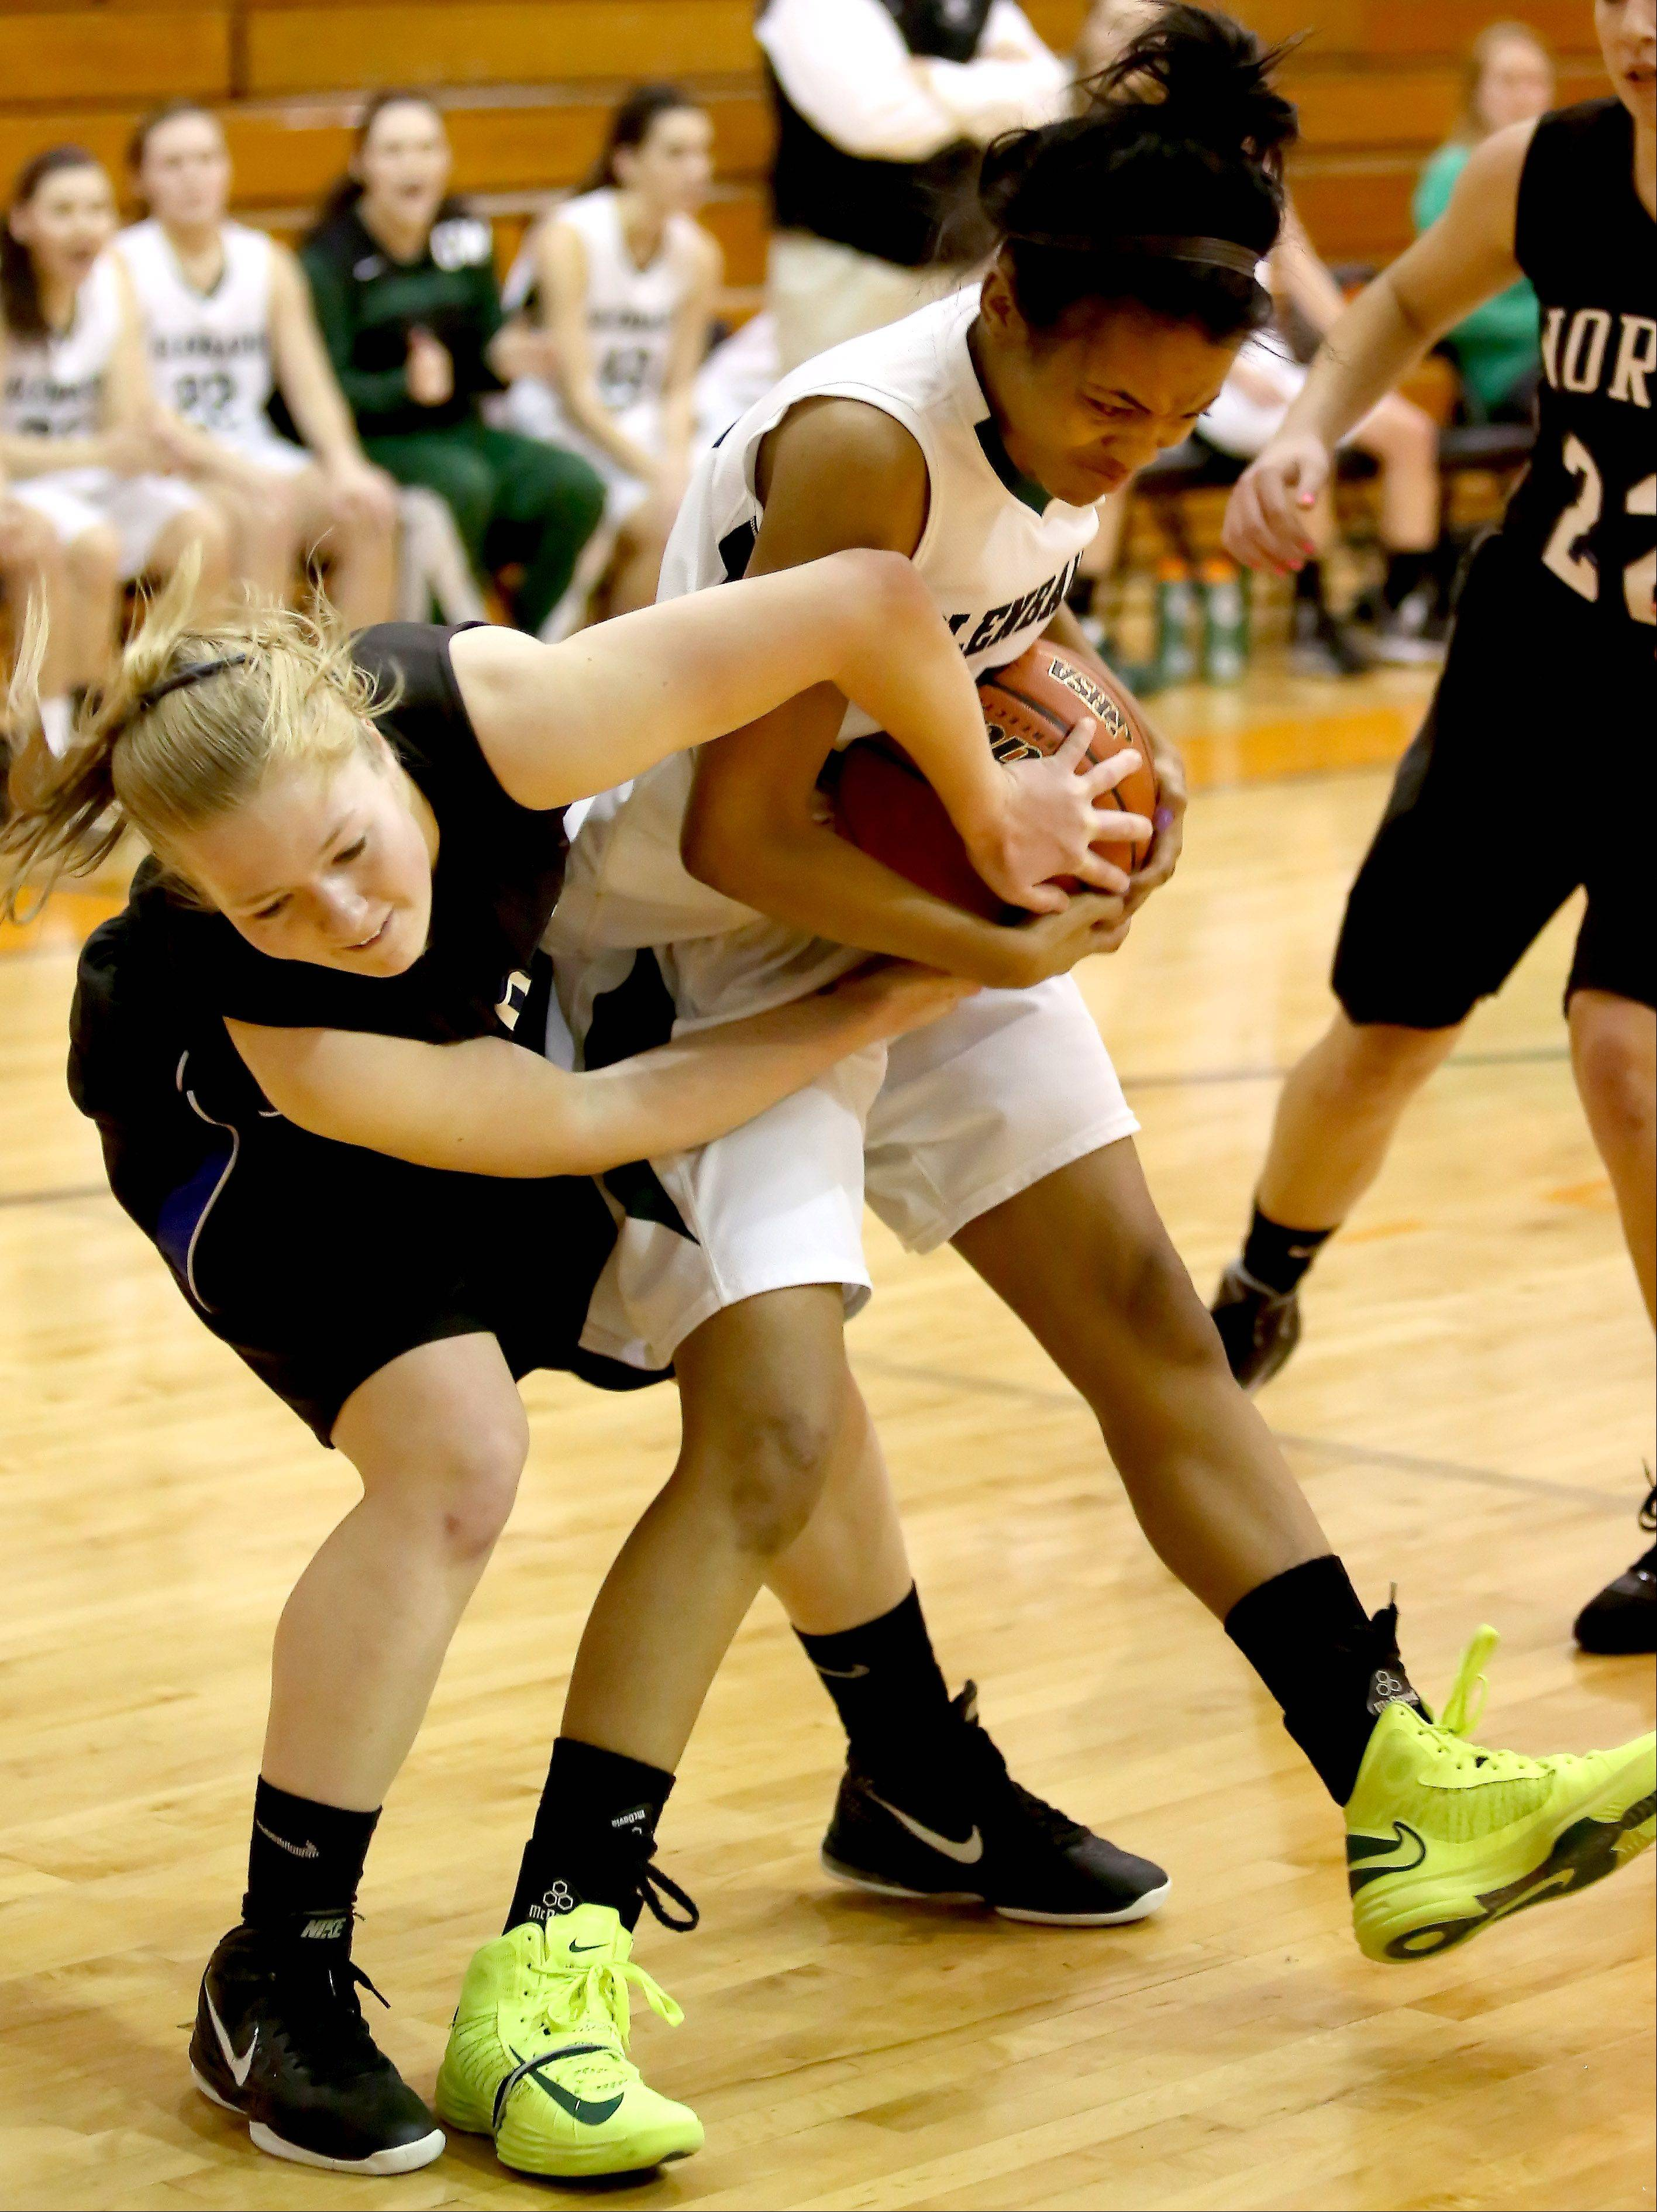 Natalie Winkates, left, of St. Charles North and Breanna Venson, right, of Glenbard West, fight for the ball during Class 4A regional quarterfinals at Wheaton Warrenville South on Monday.